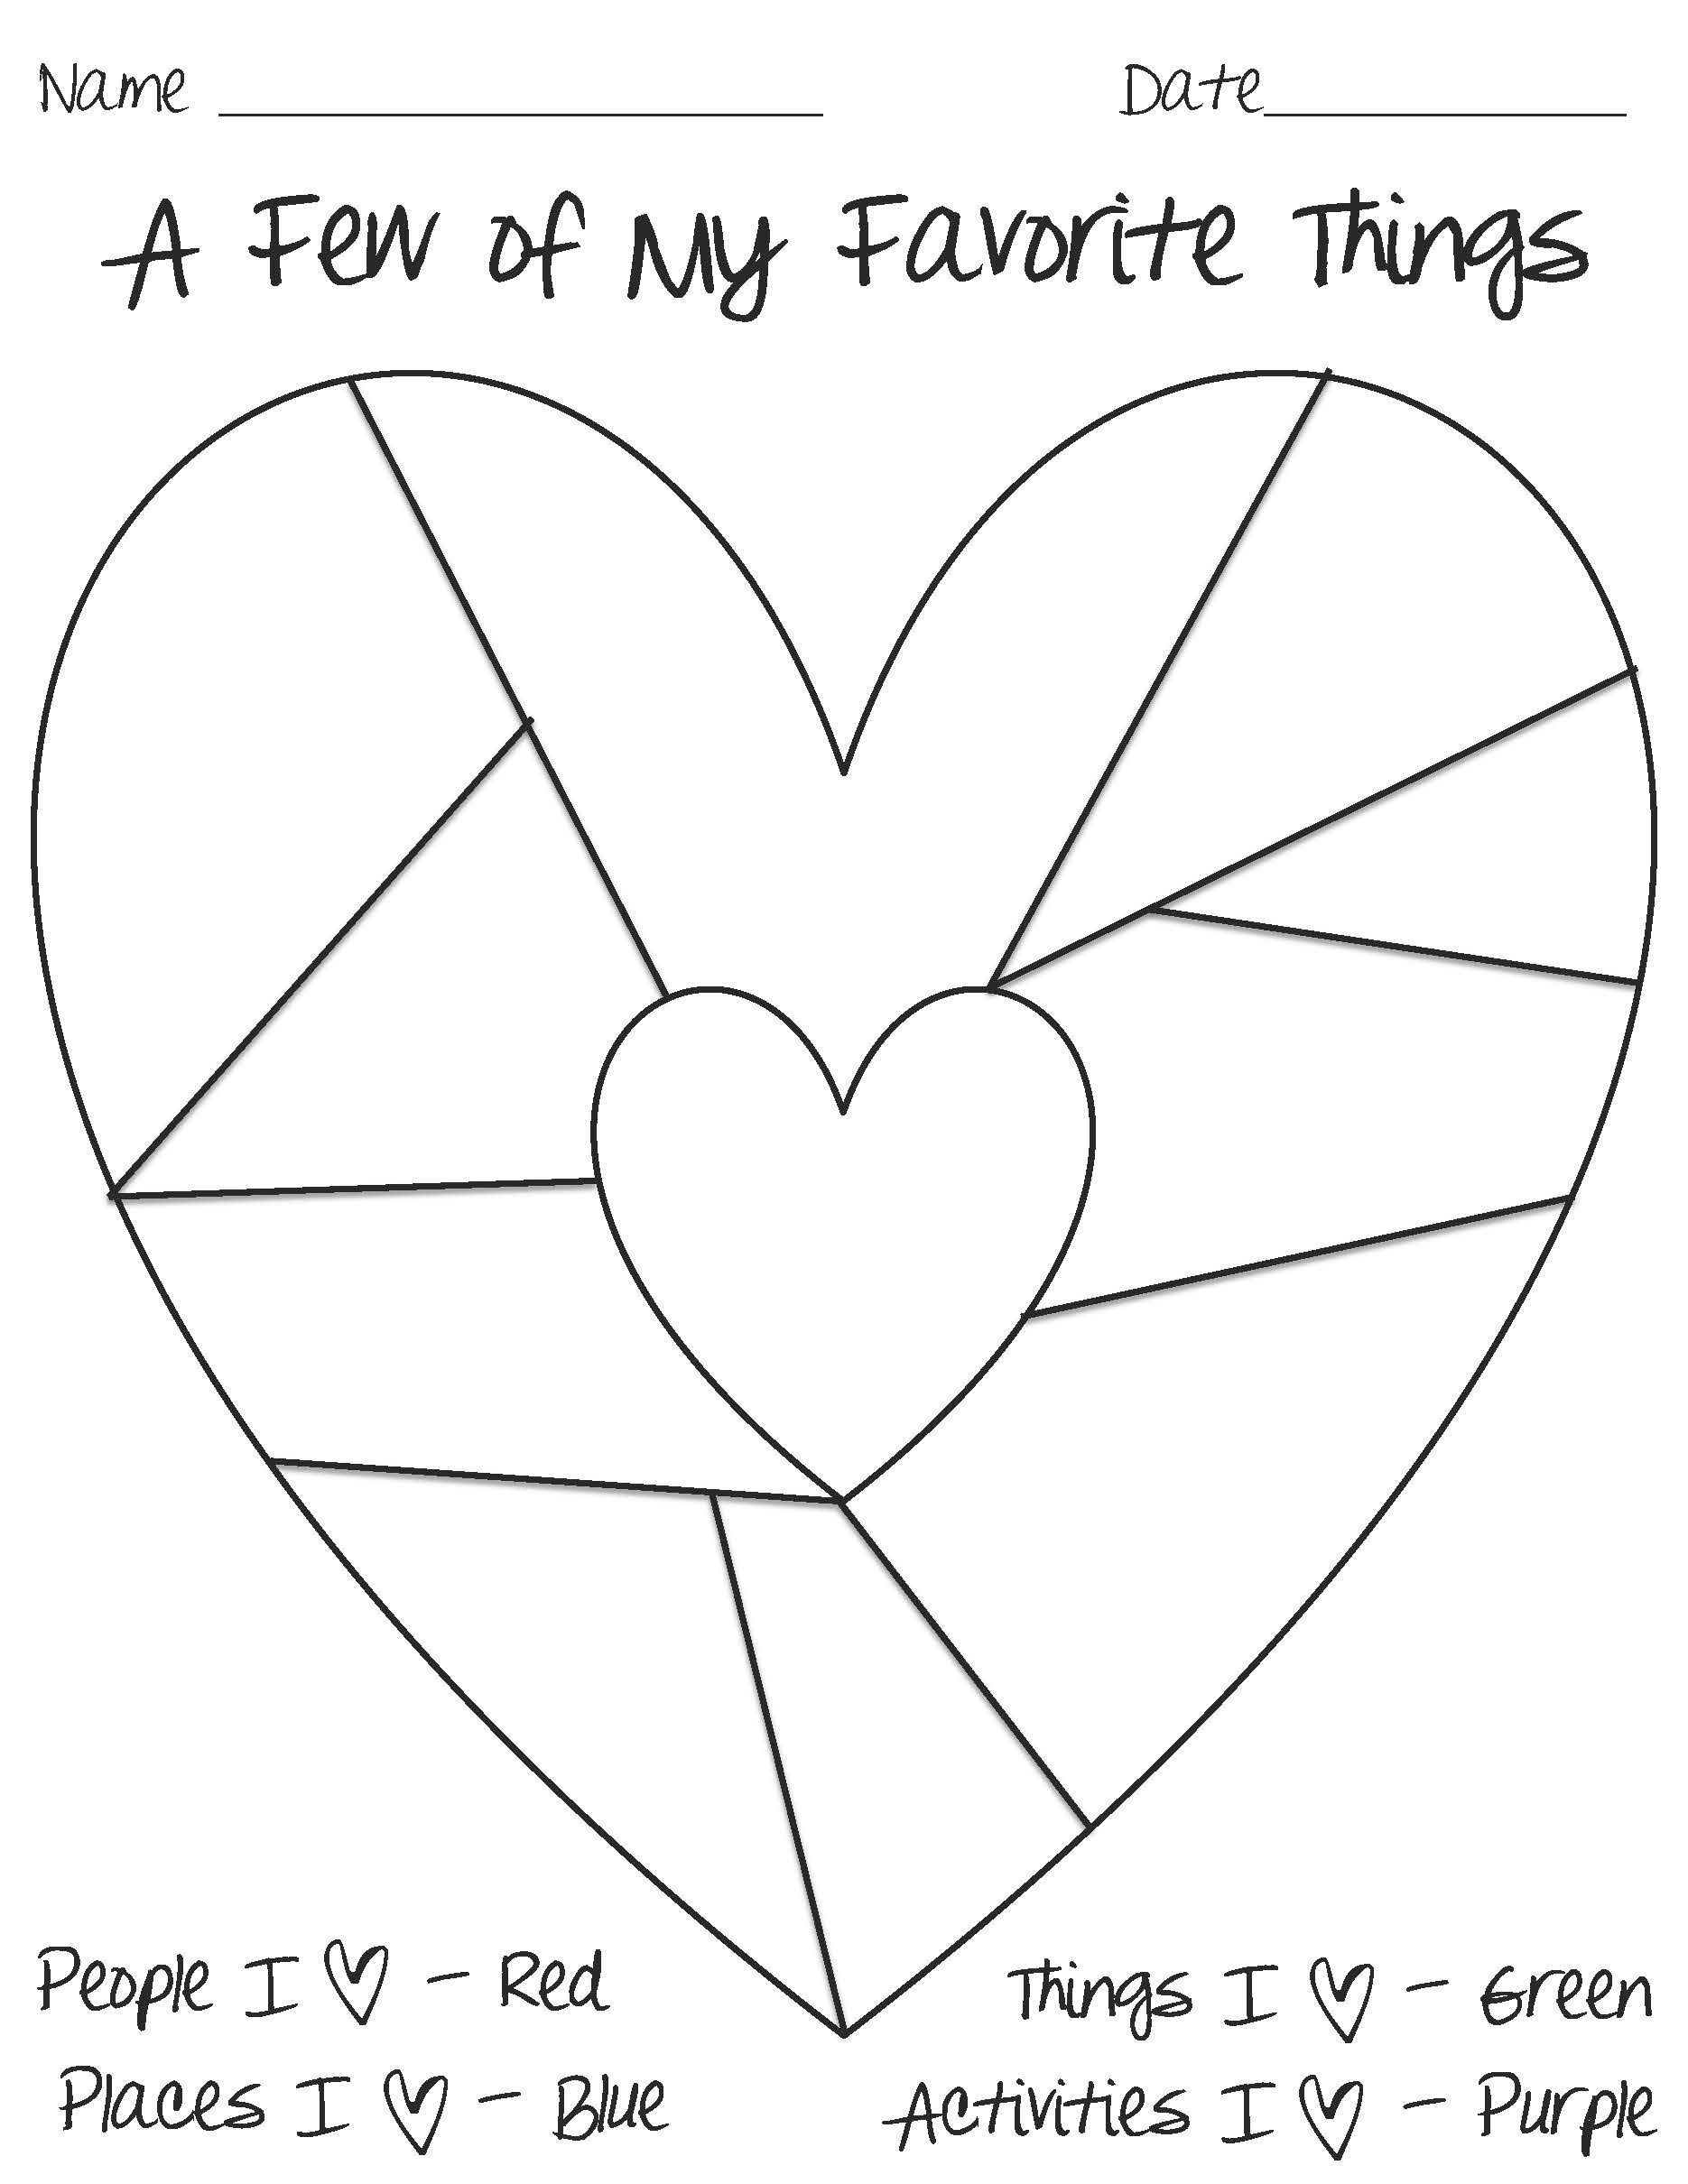 Heart Map Template | Heart Map, Writing Workshop, Writing within Heart Map Template